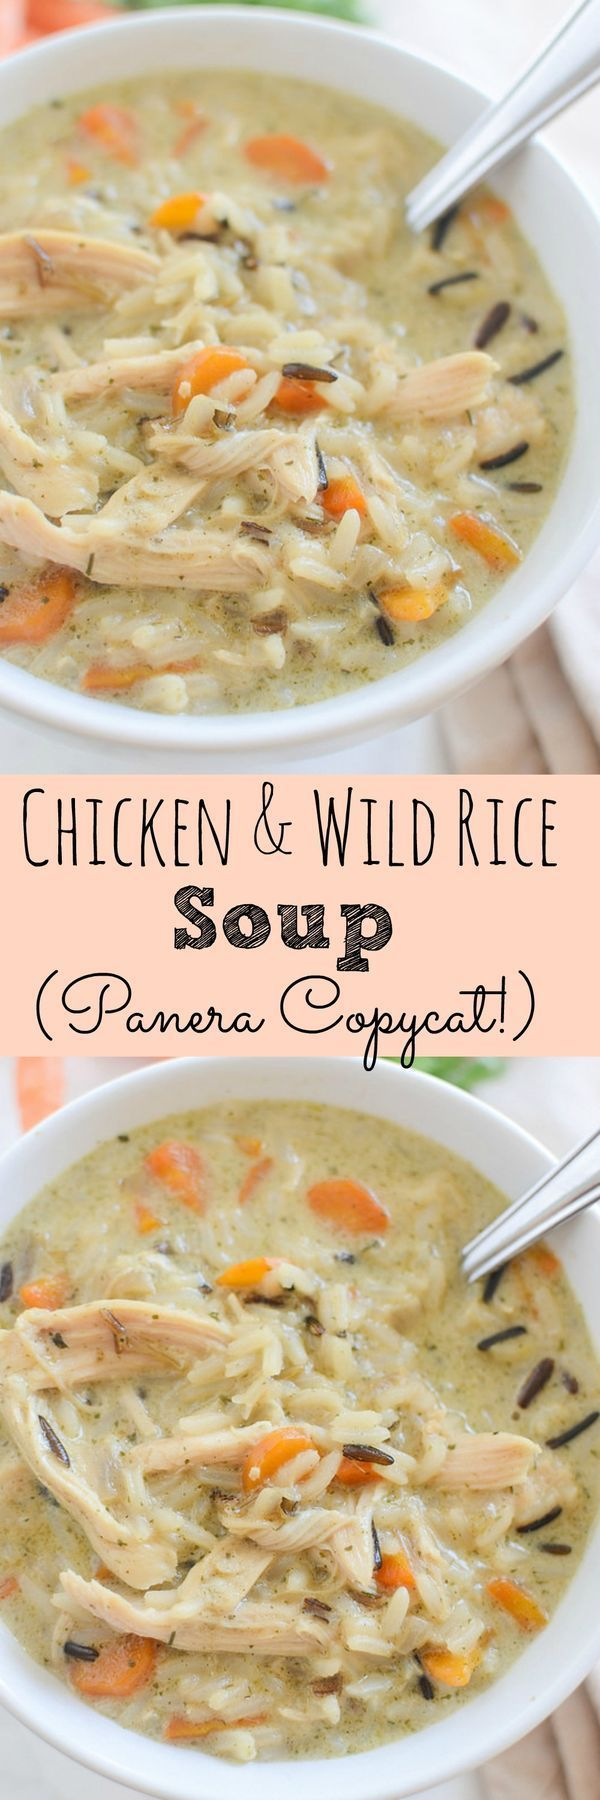 手机壳定制air jordan   shoes Copycat Recipe for Panera   s Chicken and Wild Rice Soup This recipe is so simple and so delicious